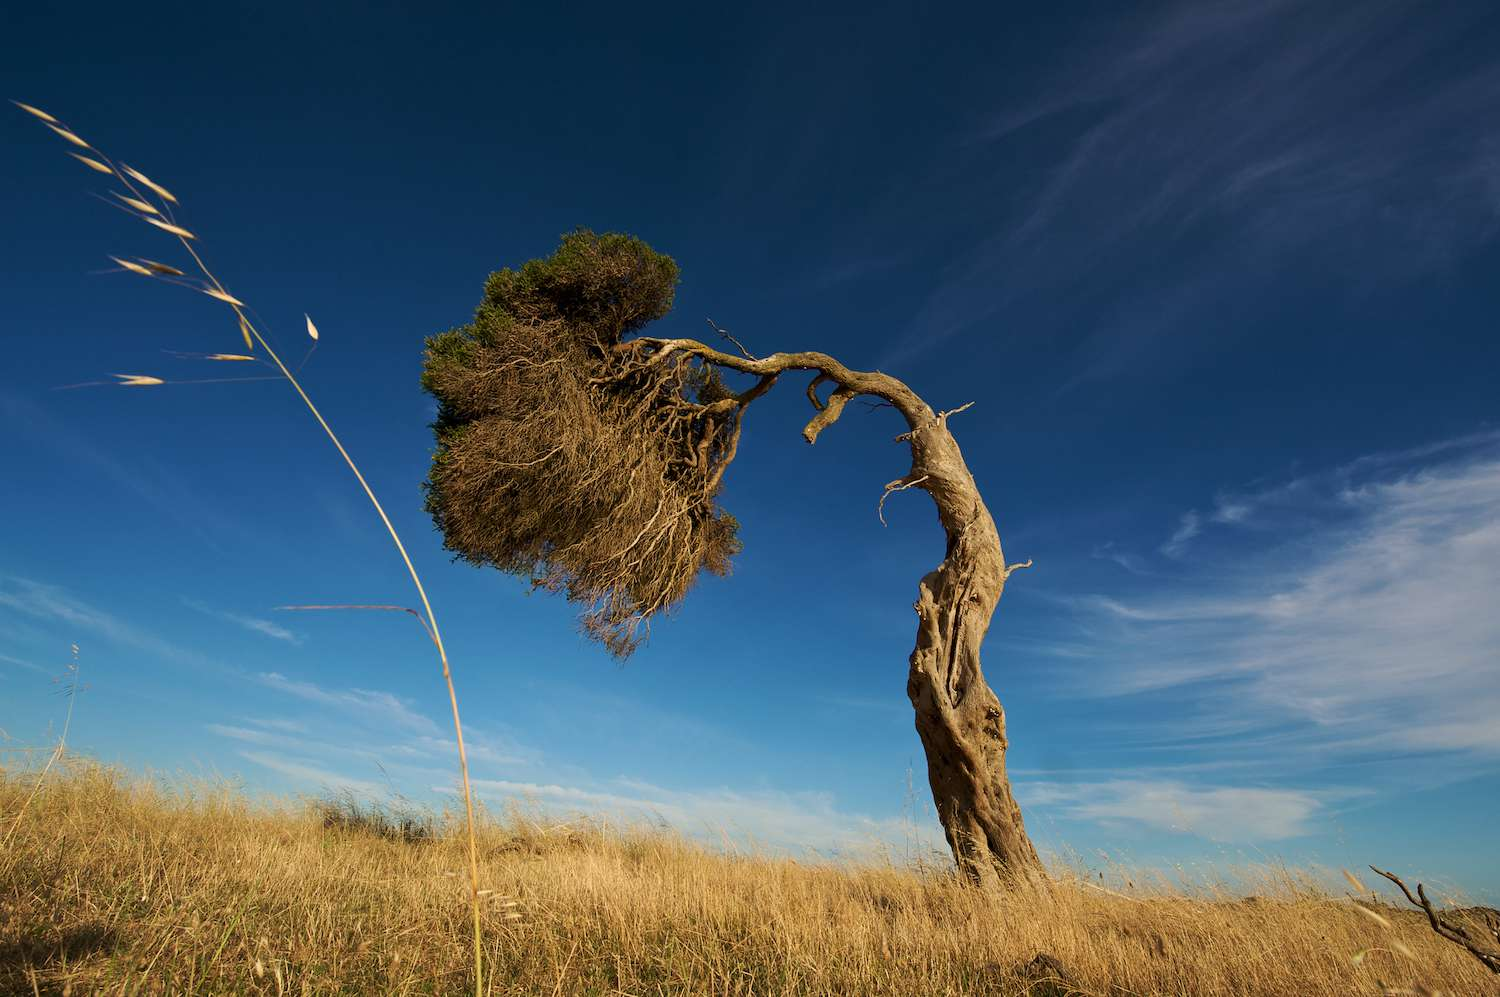 A tree bent by the wind stands in a field of grass underneath a blue sky.